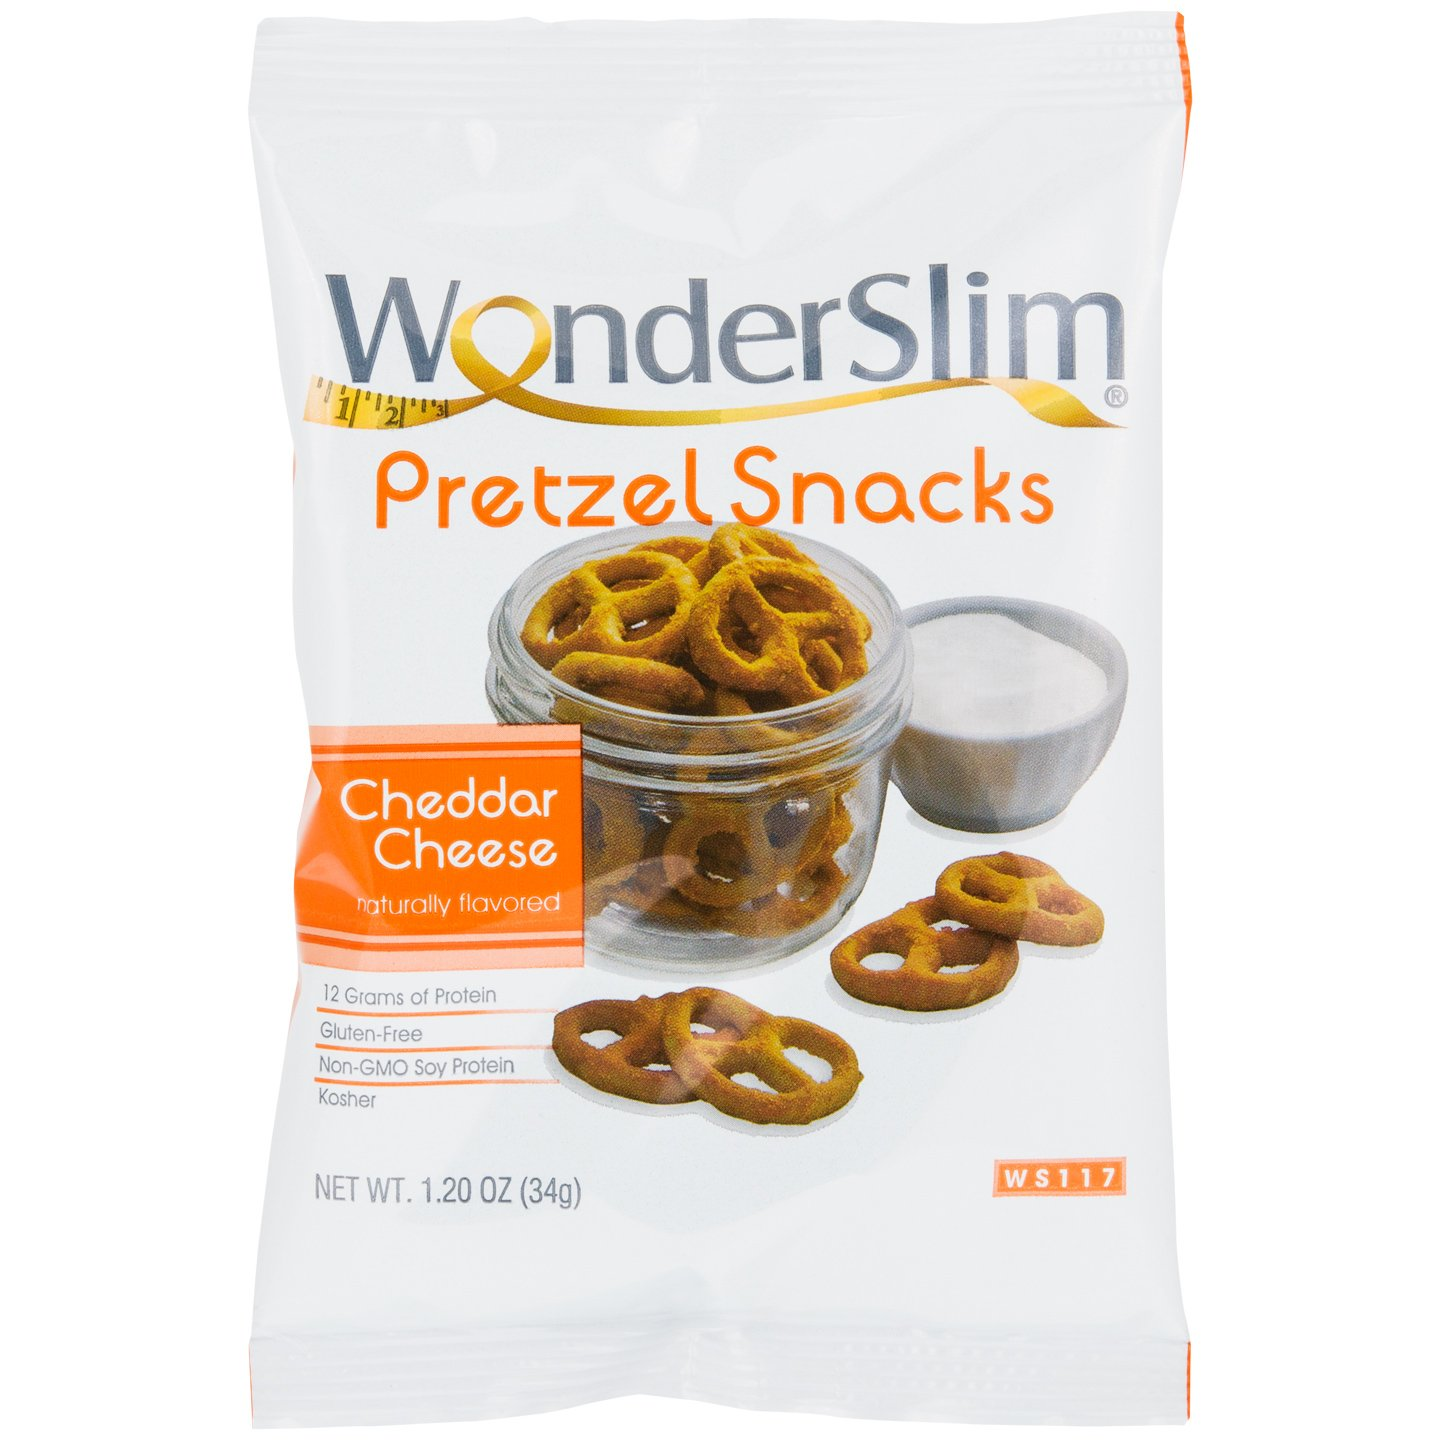 WonderSlim High Protein Pretzel Snacks - Low-Carb Diet Healthy 12g Protein Snack For Weight Loss, Cheddar, 10 Bags